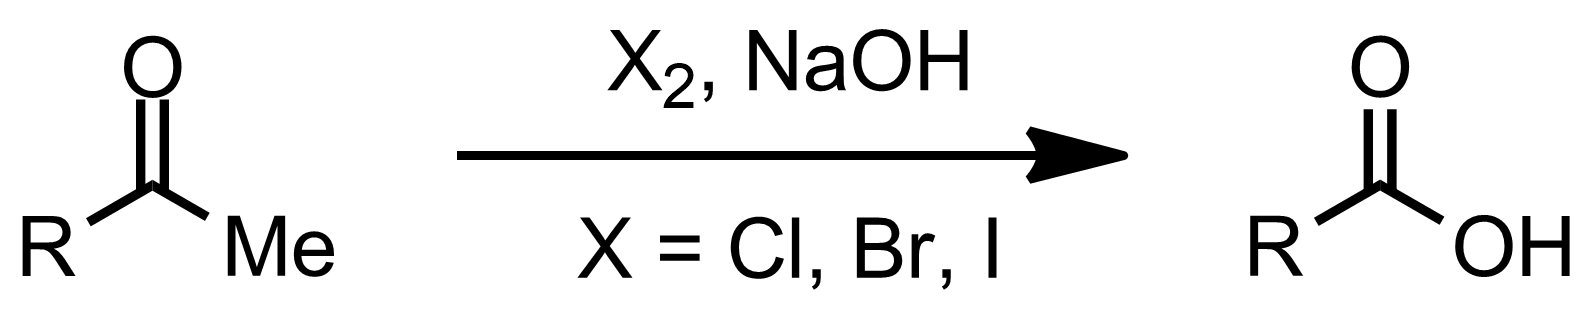 Schematic representation of the Haloform Reaction.